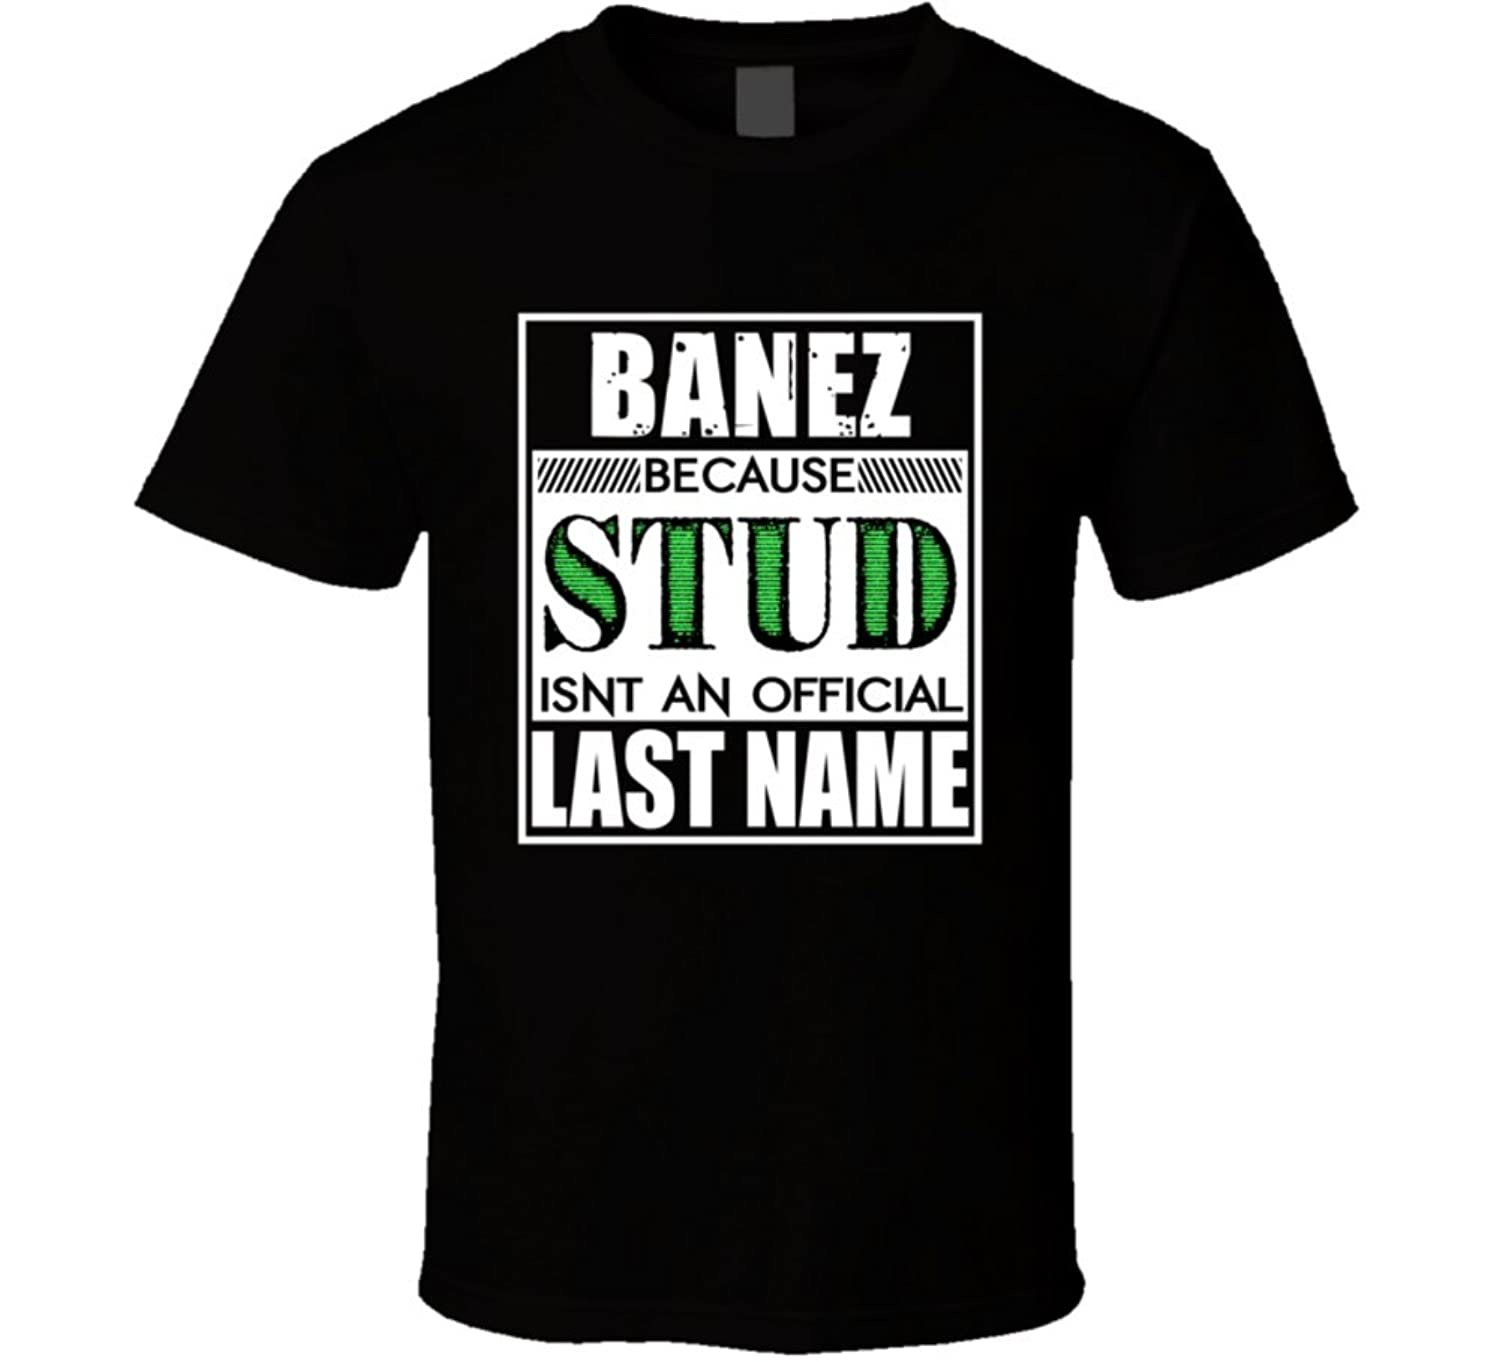 Banez Because Stud official Last Name Funny T Shirt